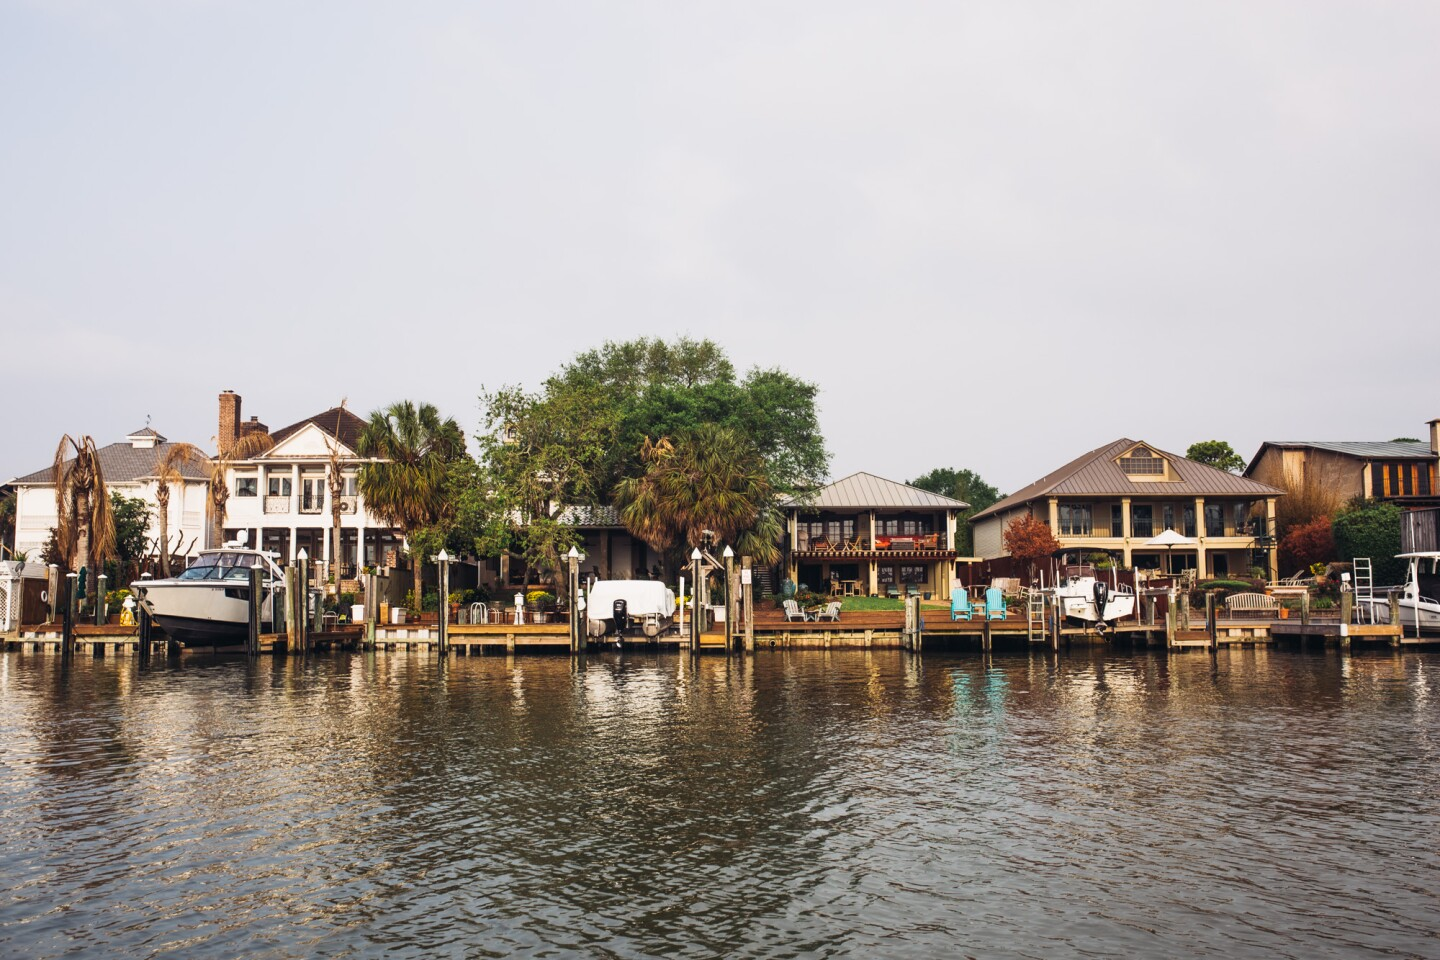 Homes and fishing villages on the edge of Clear Lake, Texas.